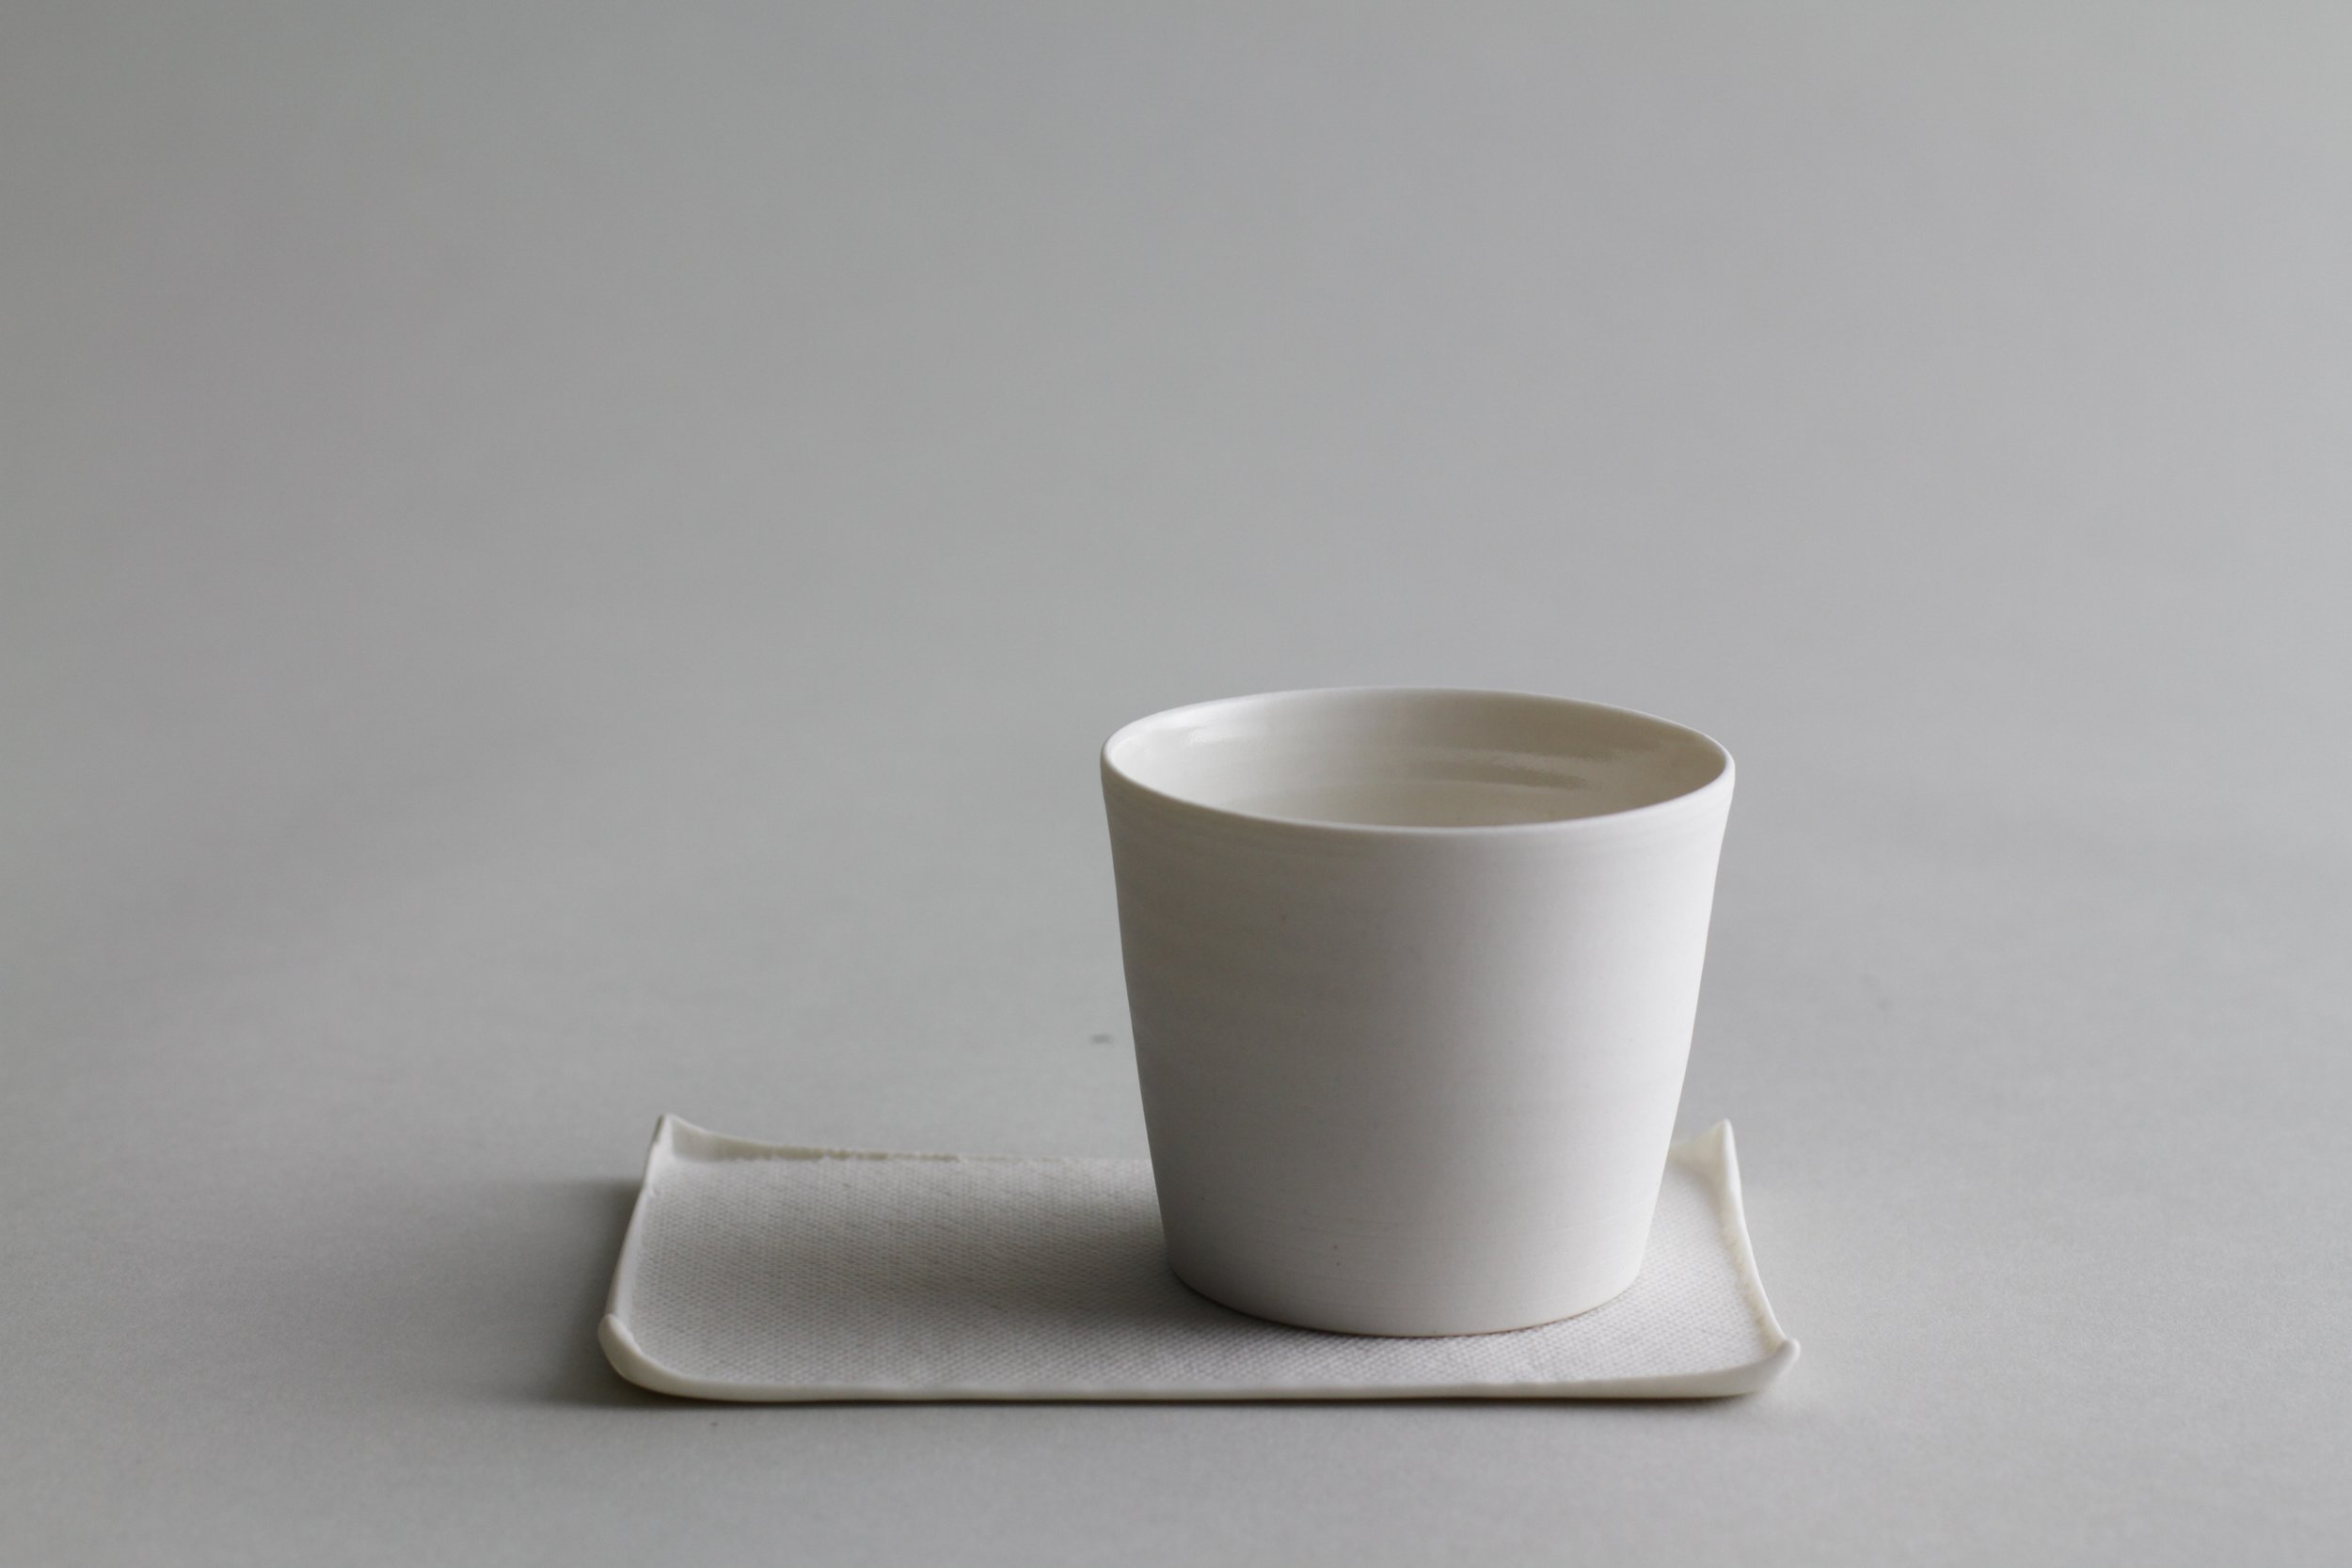 Ceramic tea cup and canvas-textured tray made by Lilith Rockett, Portland, Oregon